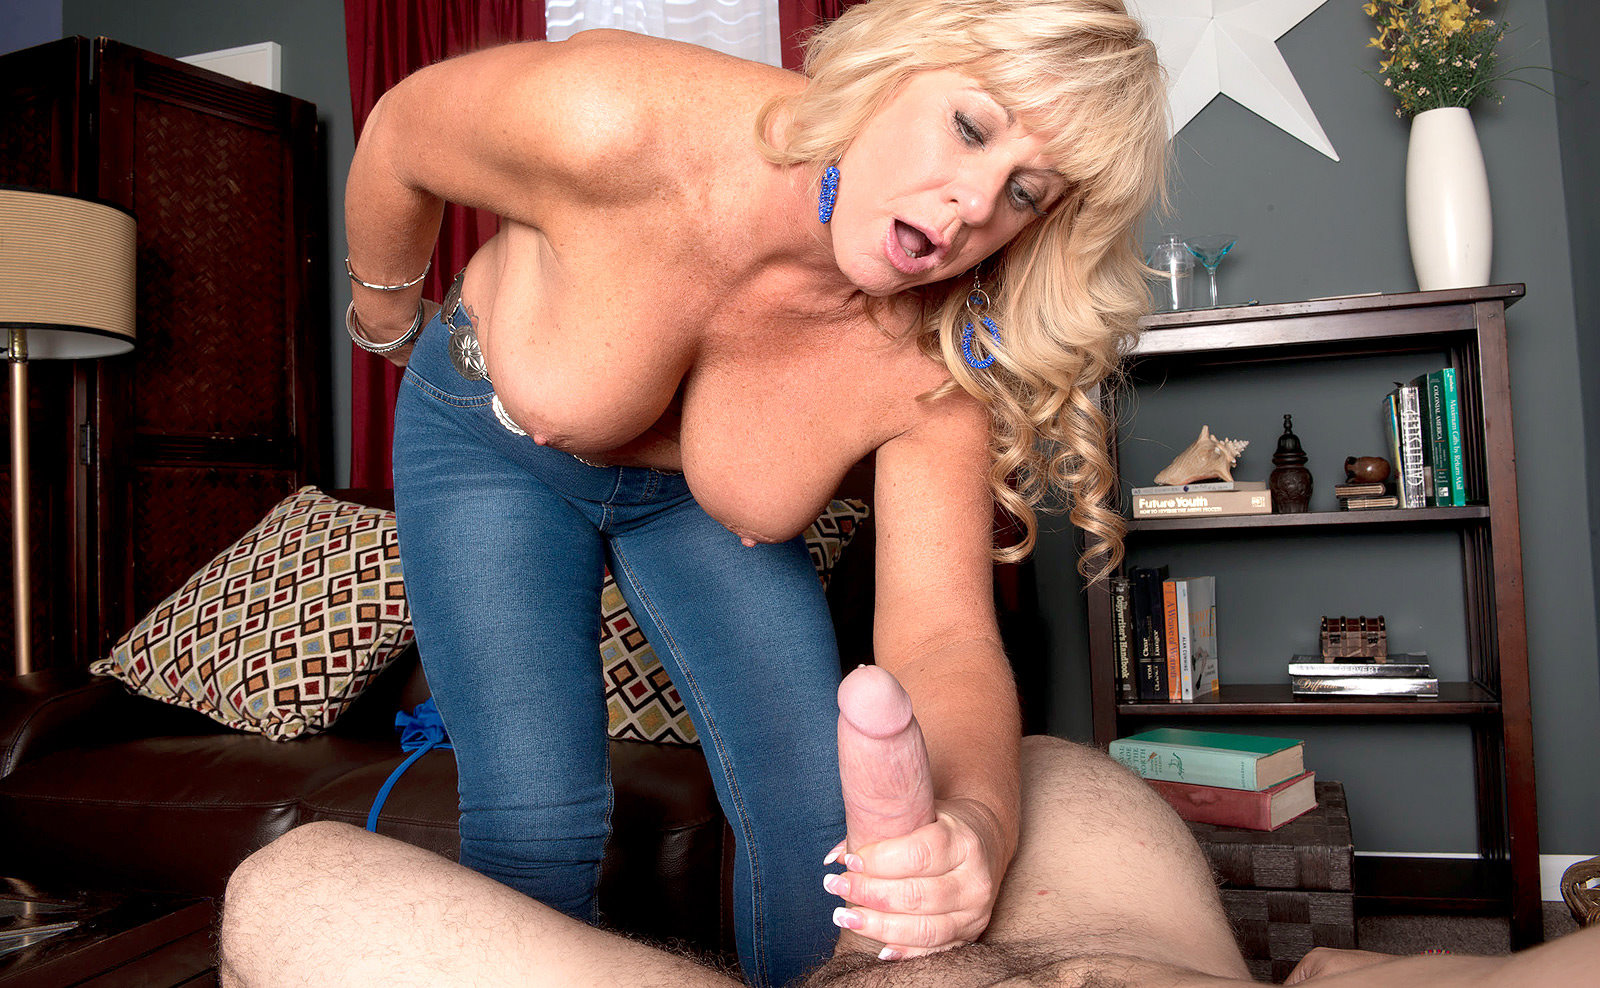 Chubby blonde uses dildo and squirts